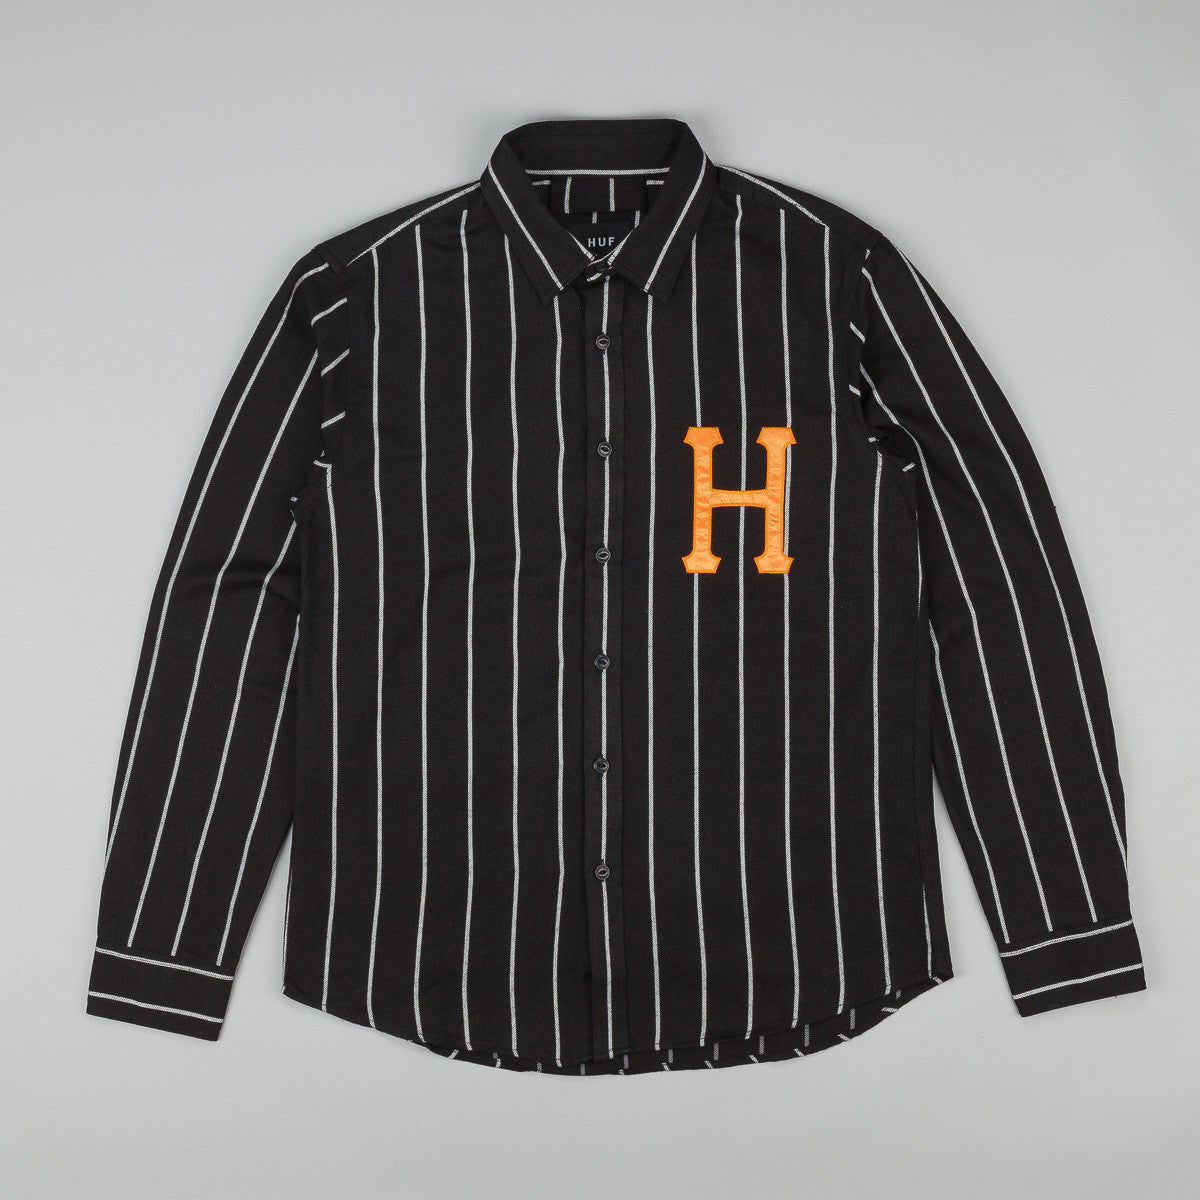 HUF Classic H Baseball Long Sleeve Shirt - Black / White